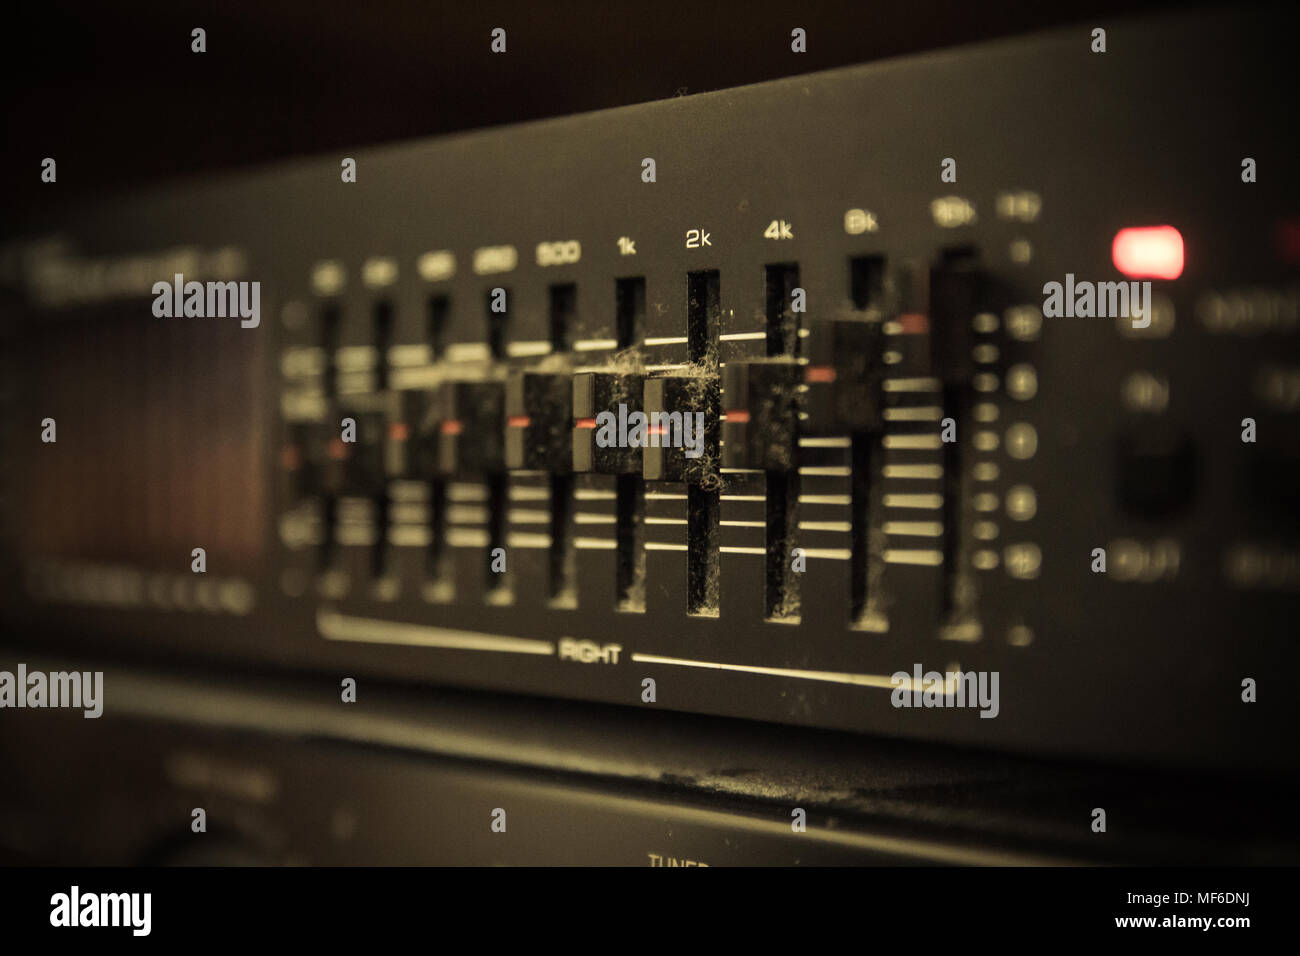 Graphic equalizer controls on an audio system - Close Up Selective